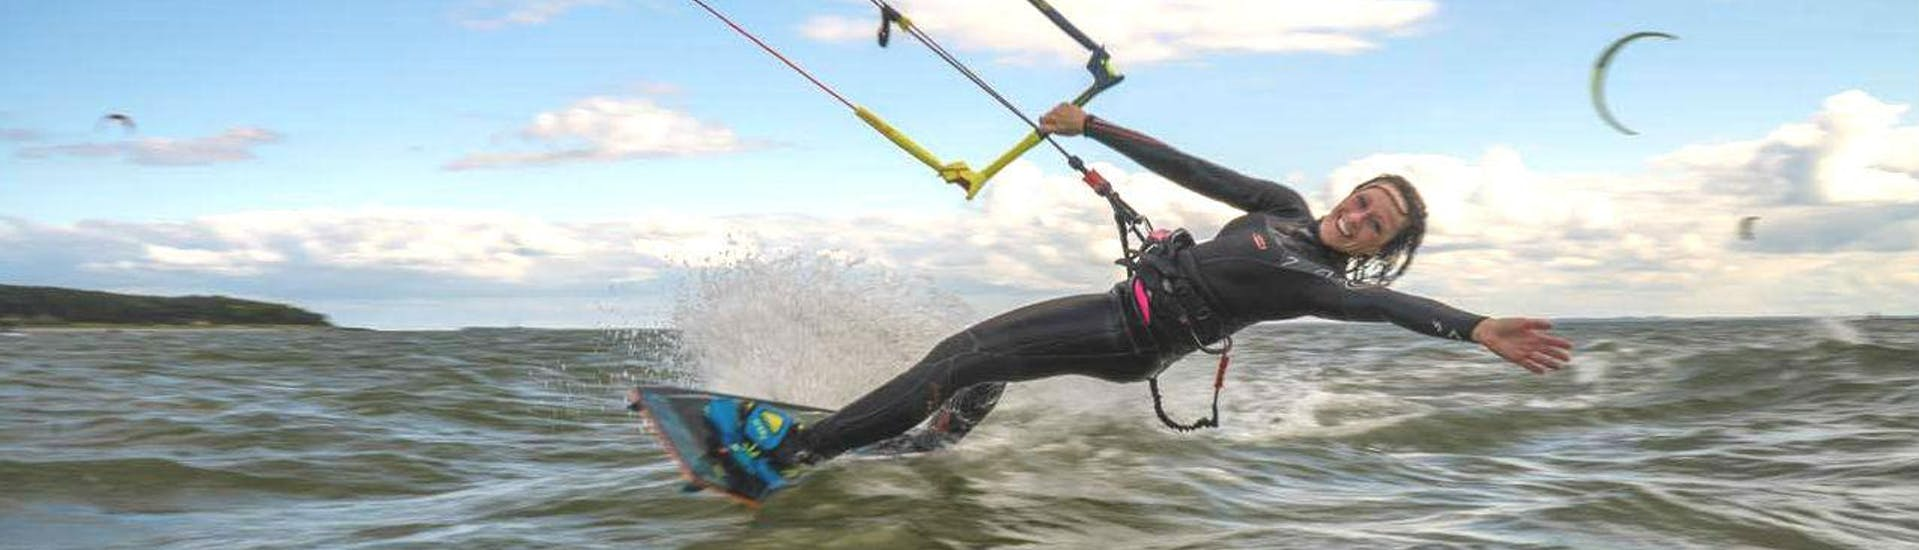 "Kitesurfing Lessons ""Refresh"" - Thiessow"